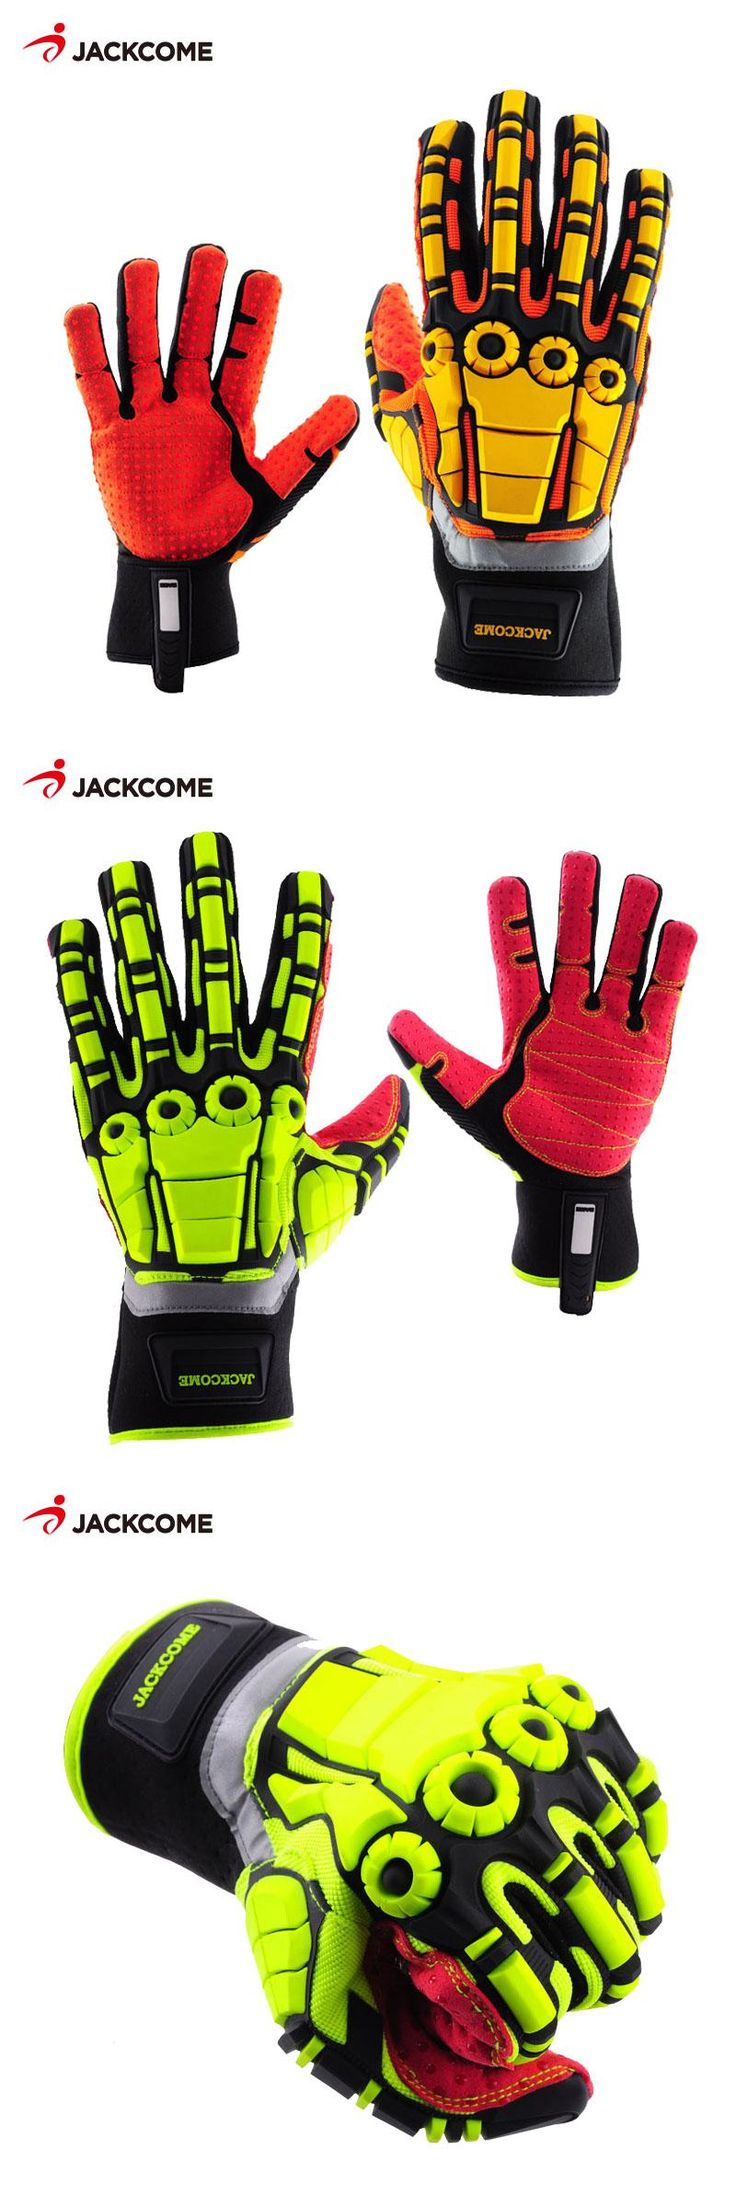 [Visit to Buy] JACKCOME Cycling Anti Vibration and Gas Safety Gloves Mechanic Fluorescent Nylon Shock Mechanics Impact Resistant sport Glove #Advertisement